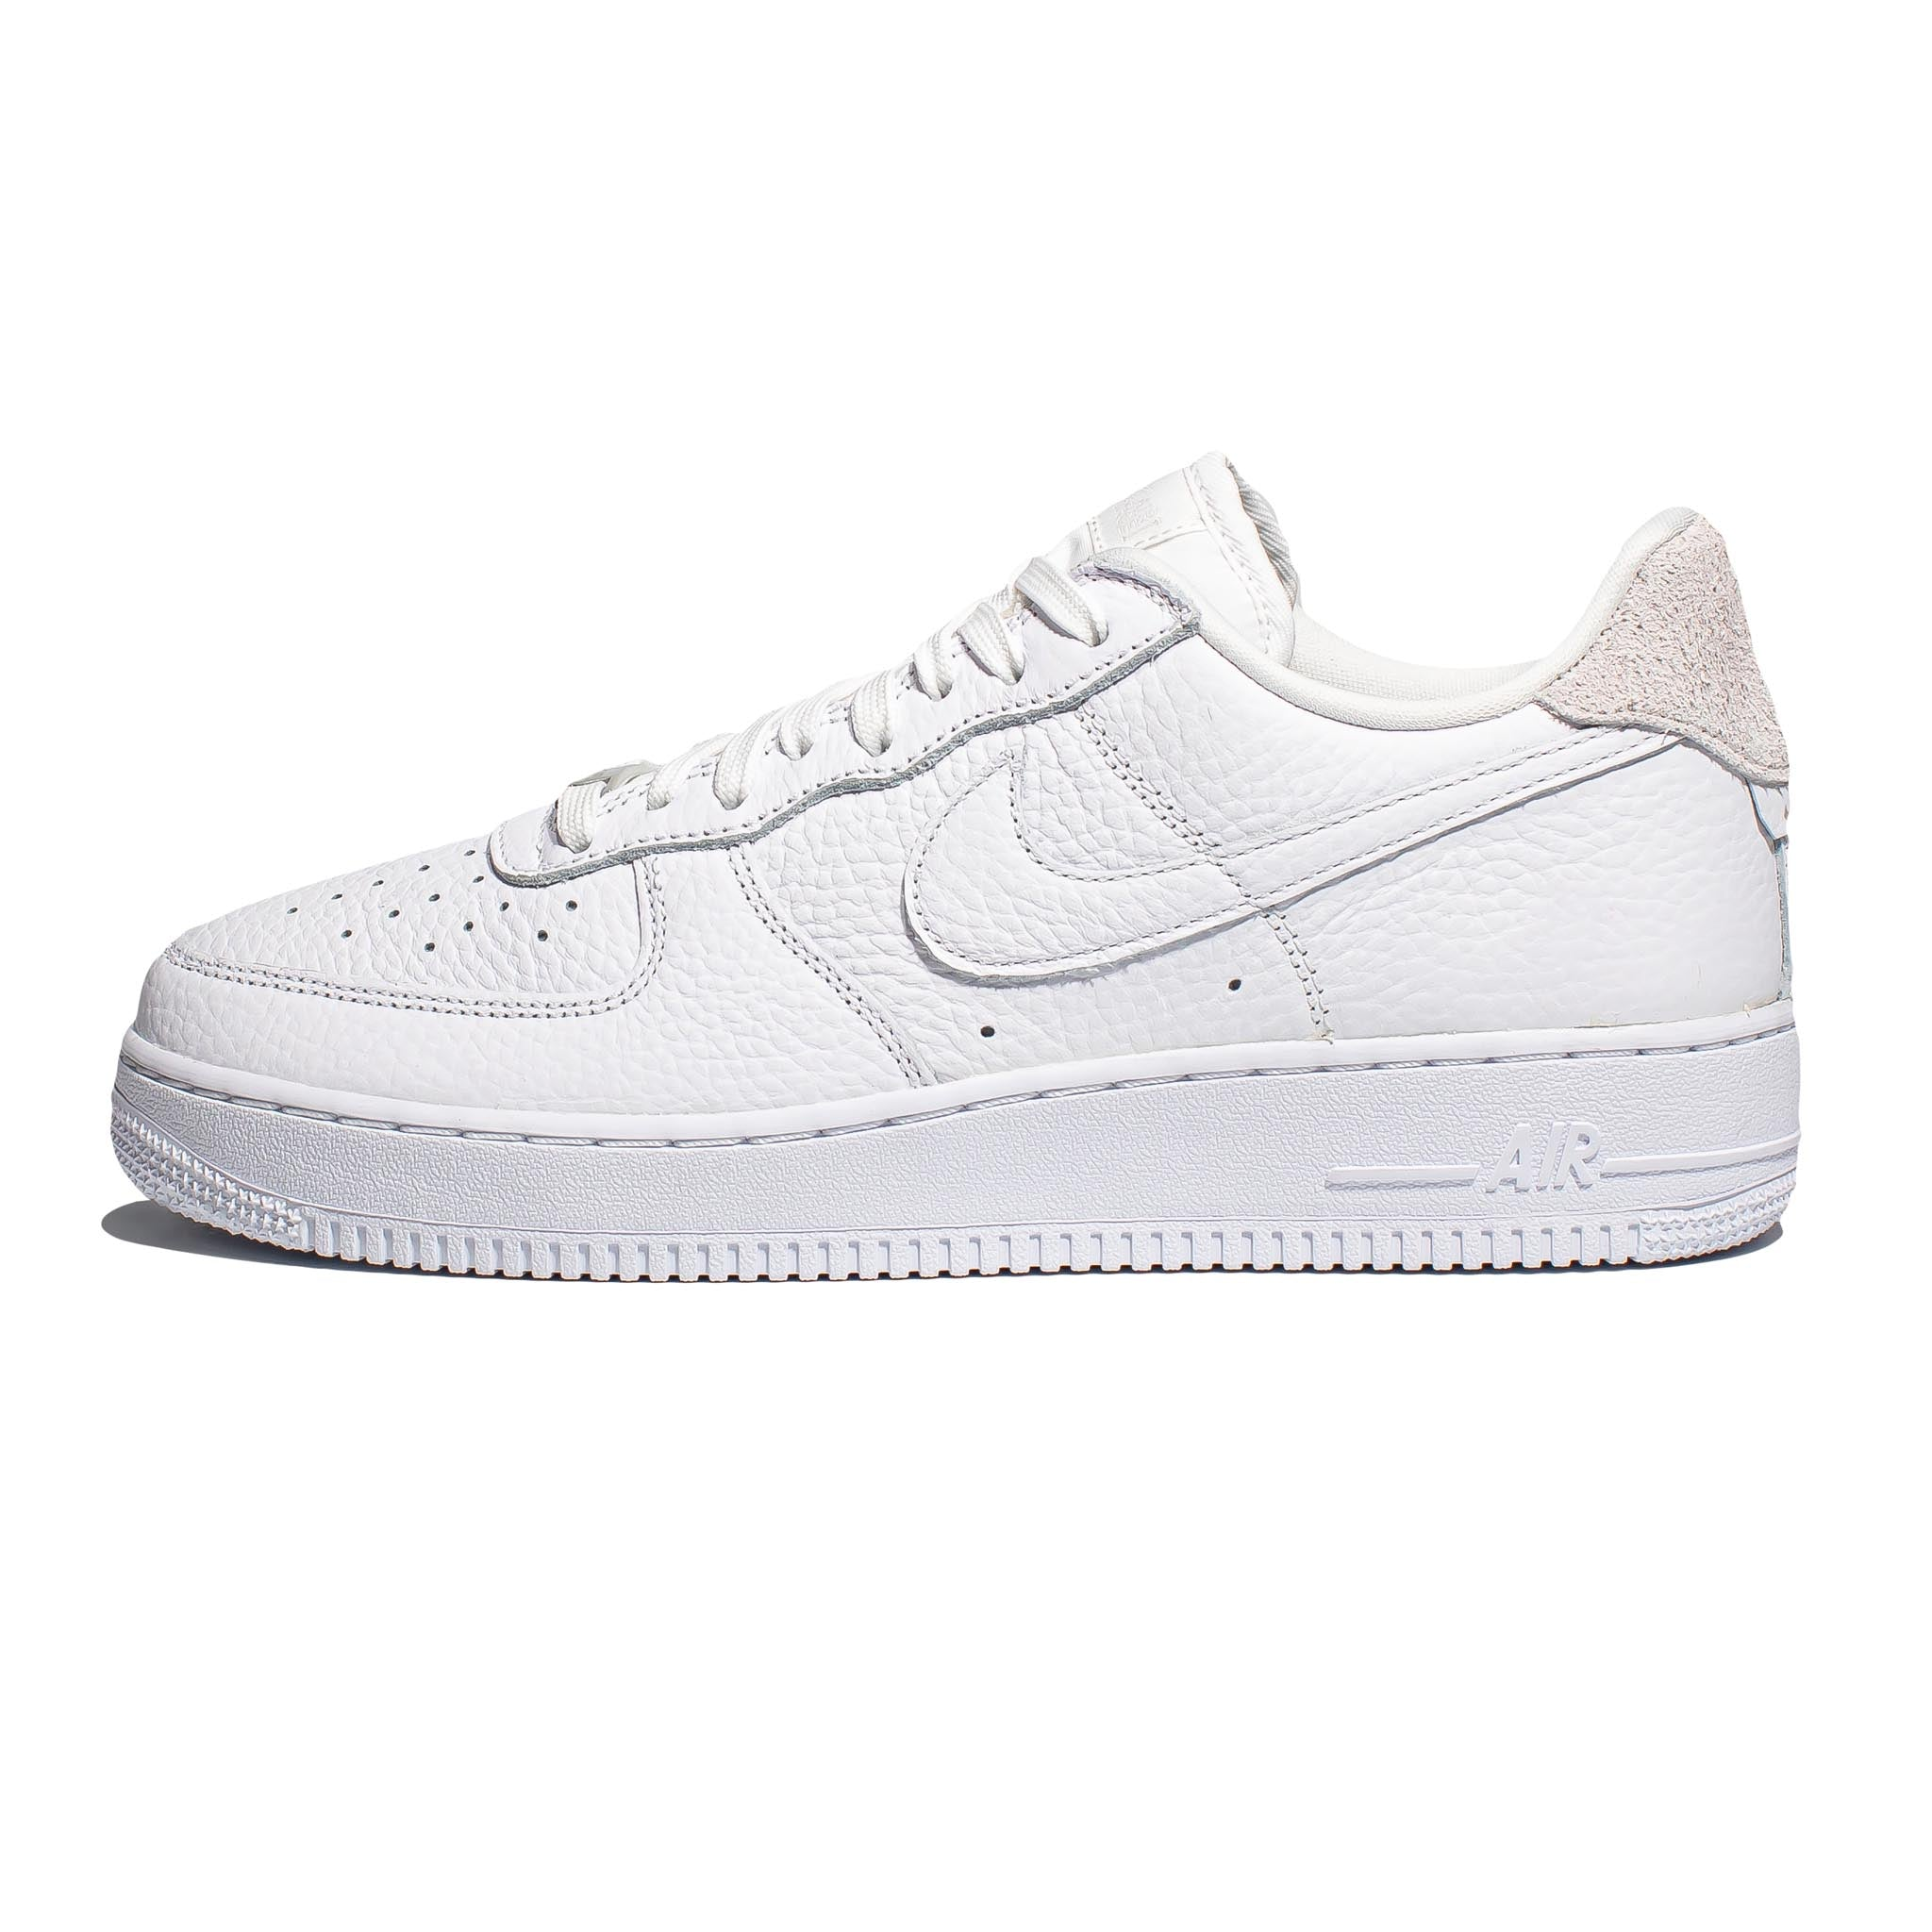 Nike Air Force 1 '07 Craft 'White/Summit White'